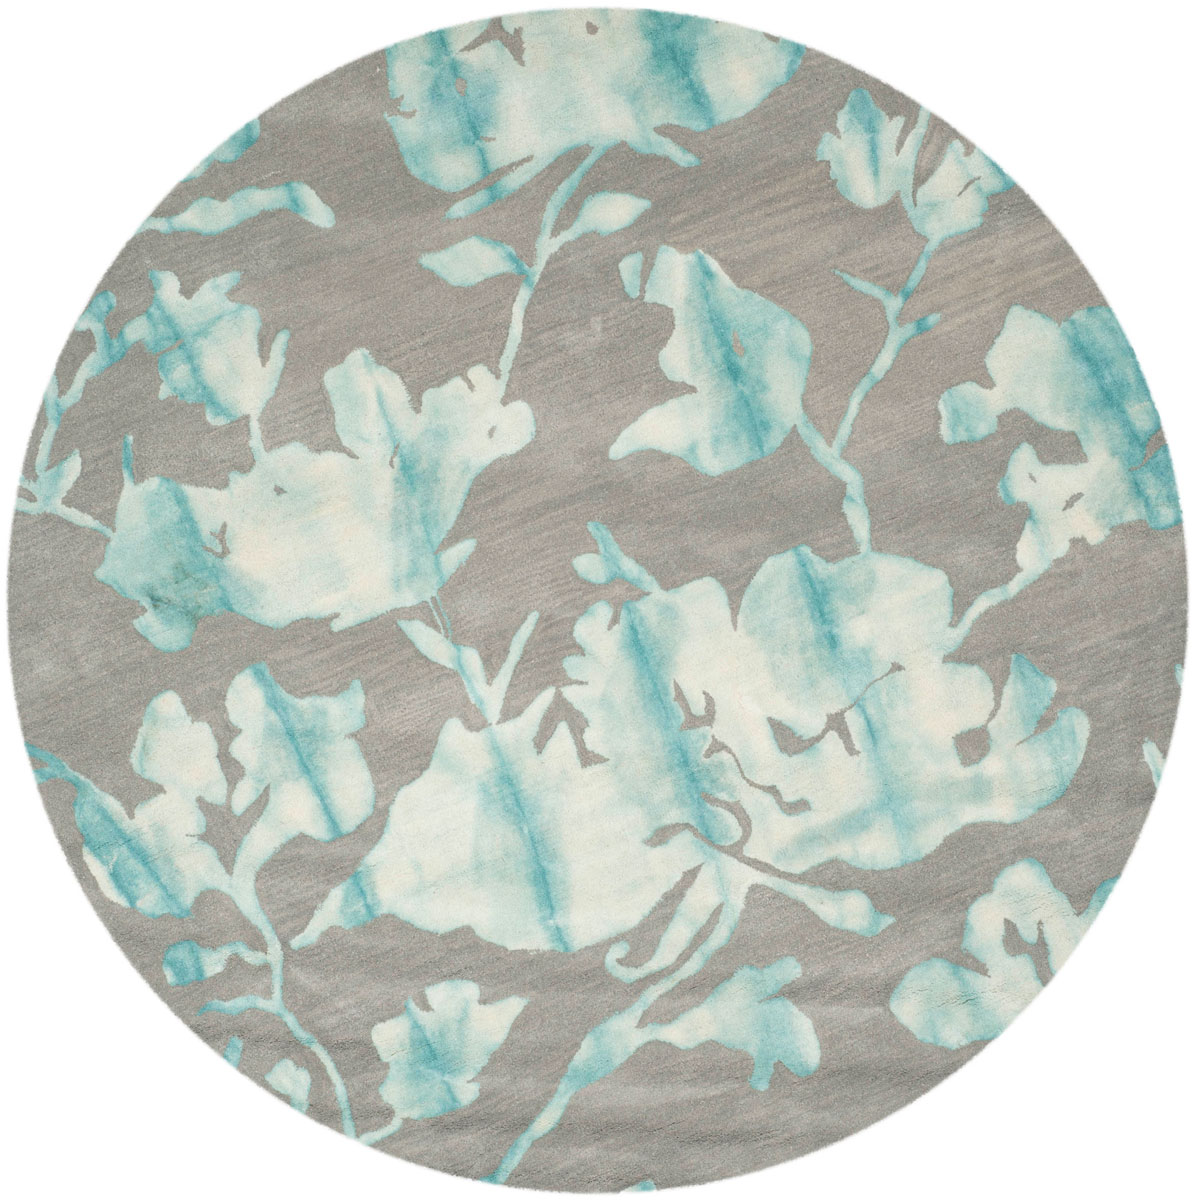 Blue Tie-Dye Flower Area Rug - Safavieh